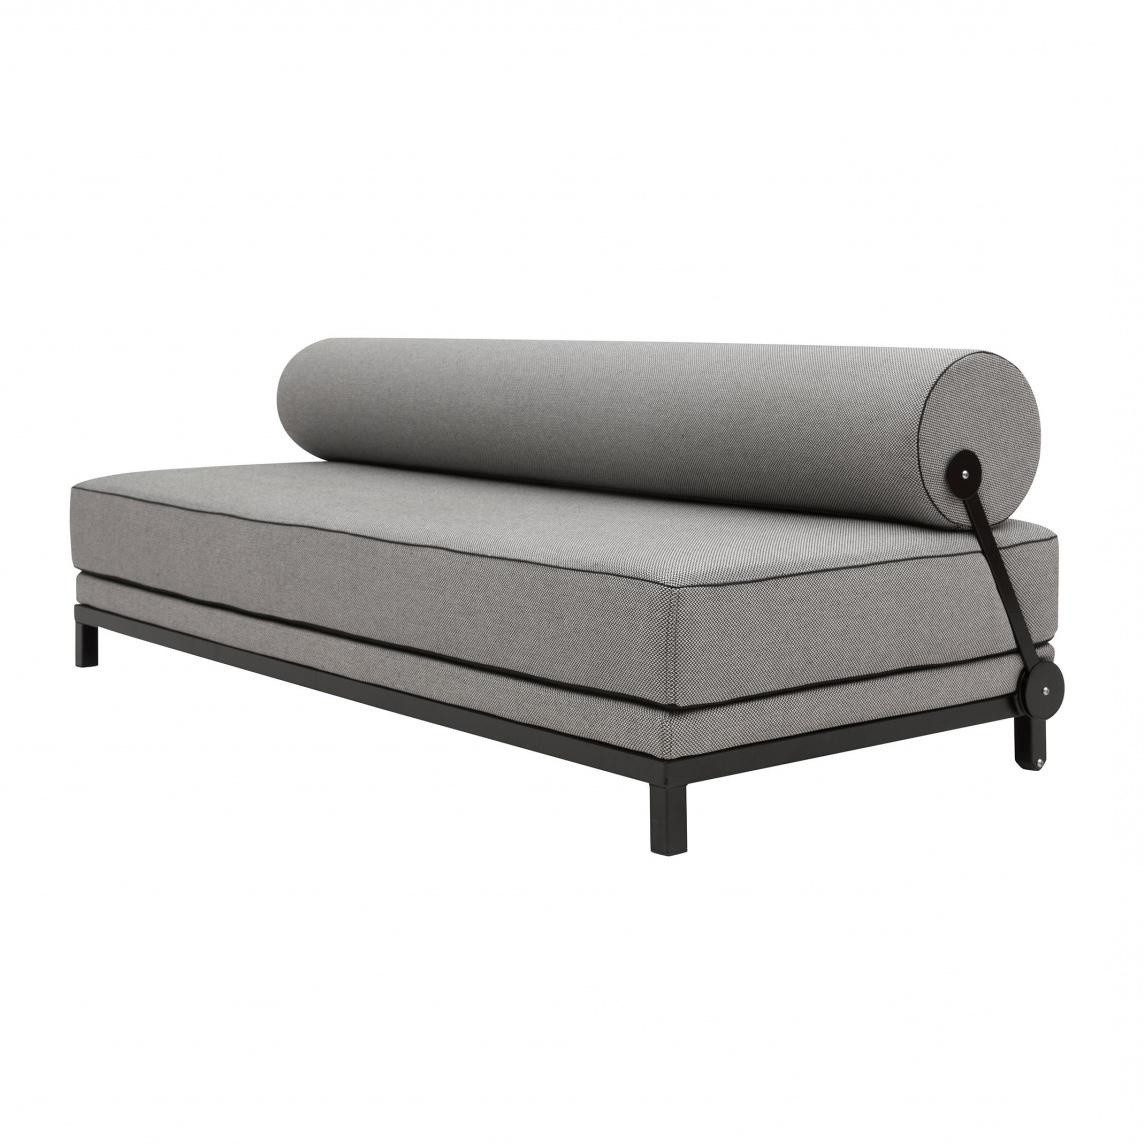 Schlafsofas Weiß Sleep Day Bed Sofa Bed